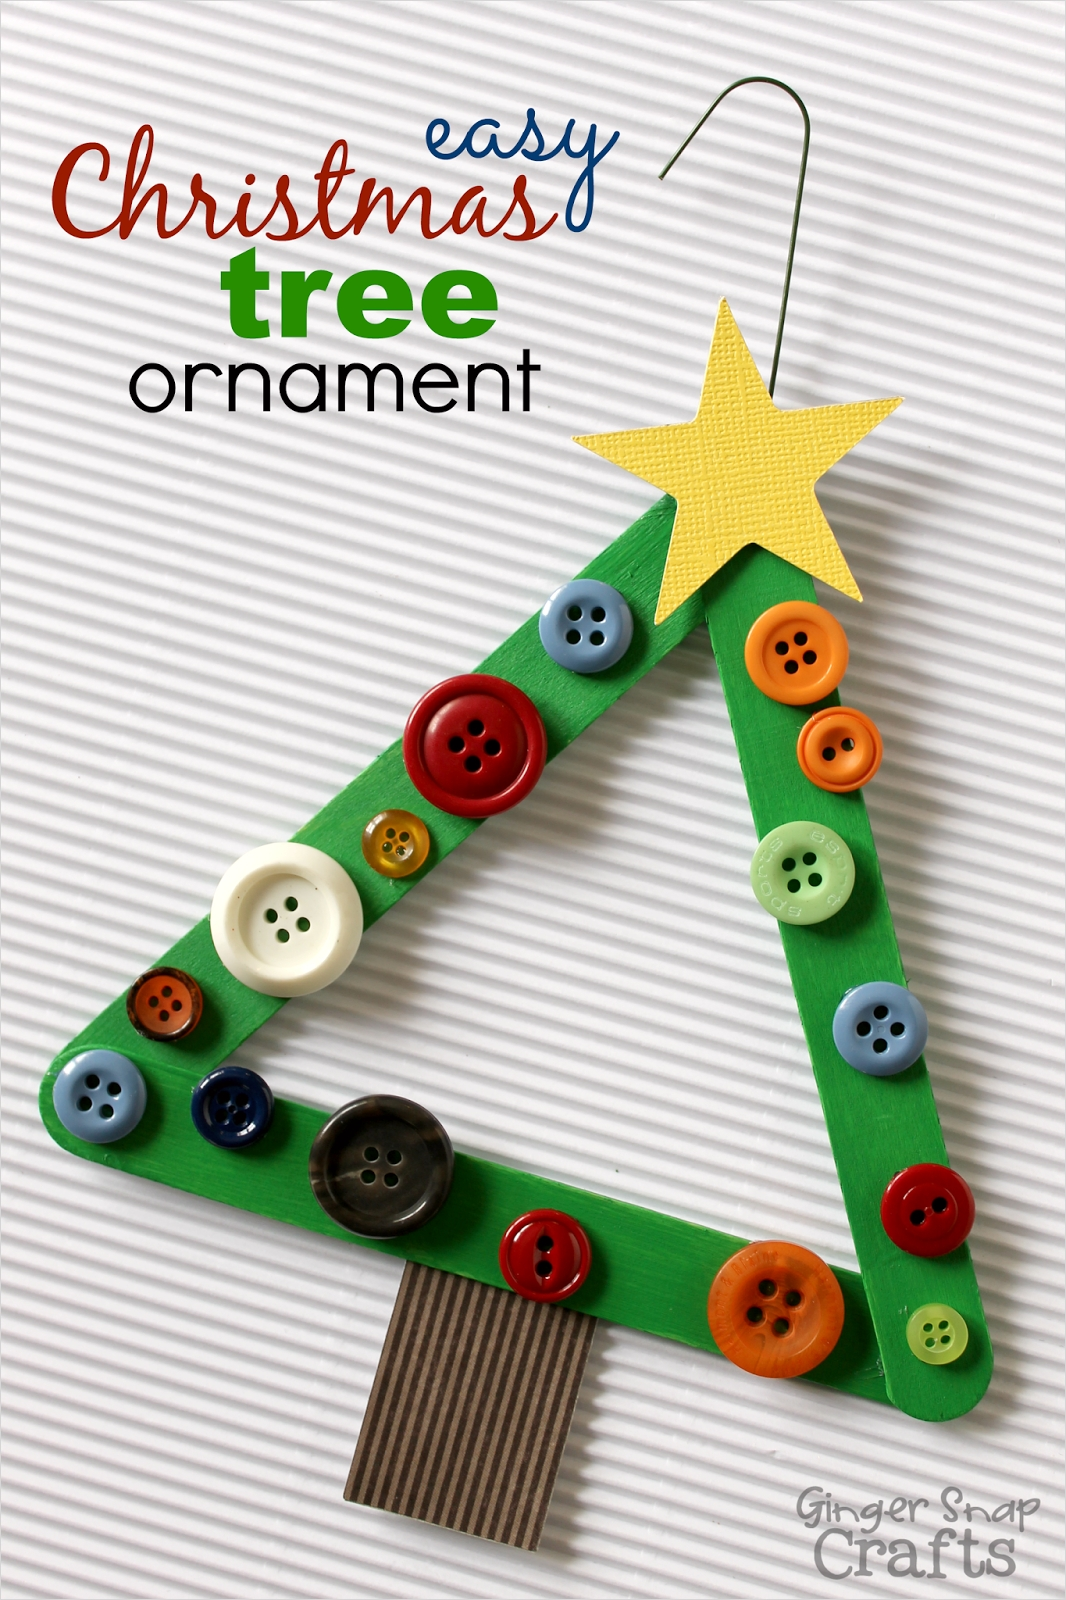 40 Diy Easy Christmas ornament Crafts Ideas 95 Easy Paper ornament Ginger Snap Crafts Lines Across 2